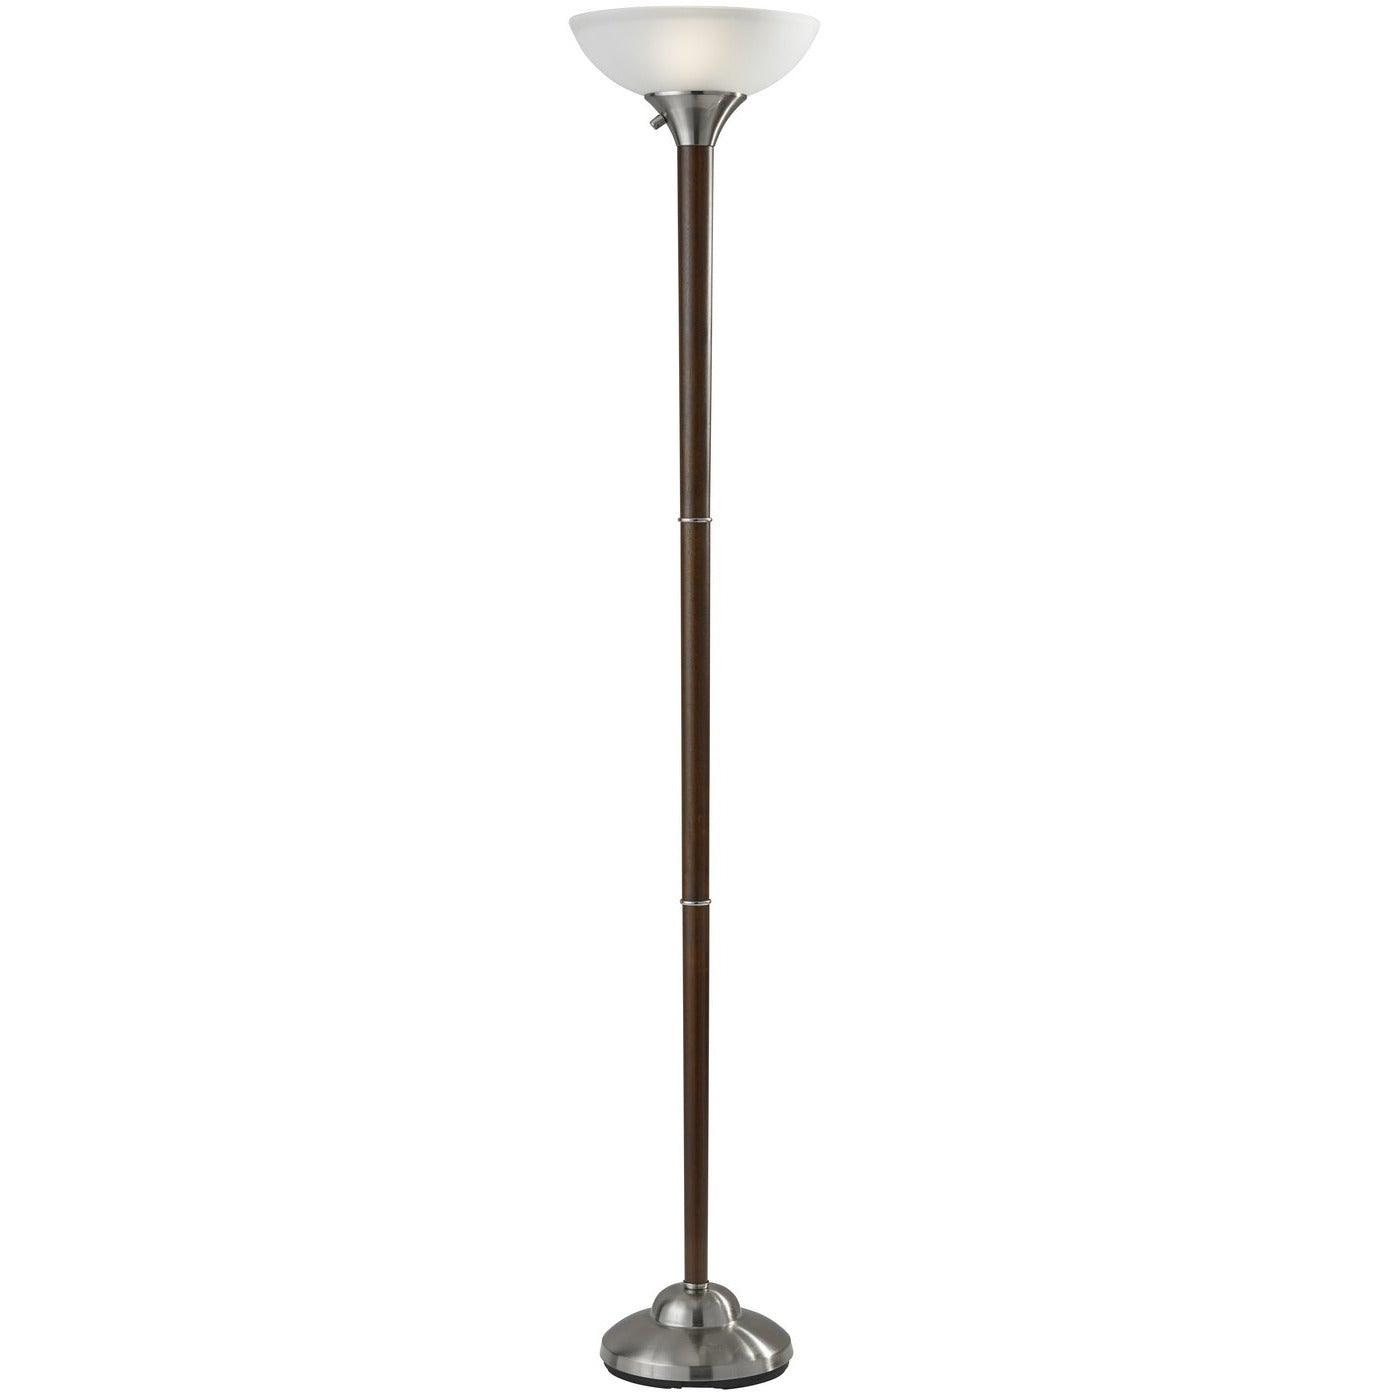 Adesso Home - 7207-15 - Two Light Floor Lamp - Alta - Walnut rubber Wood w. brushed steel accent